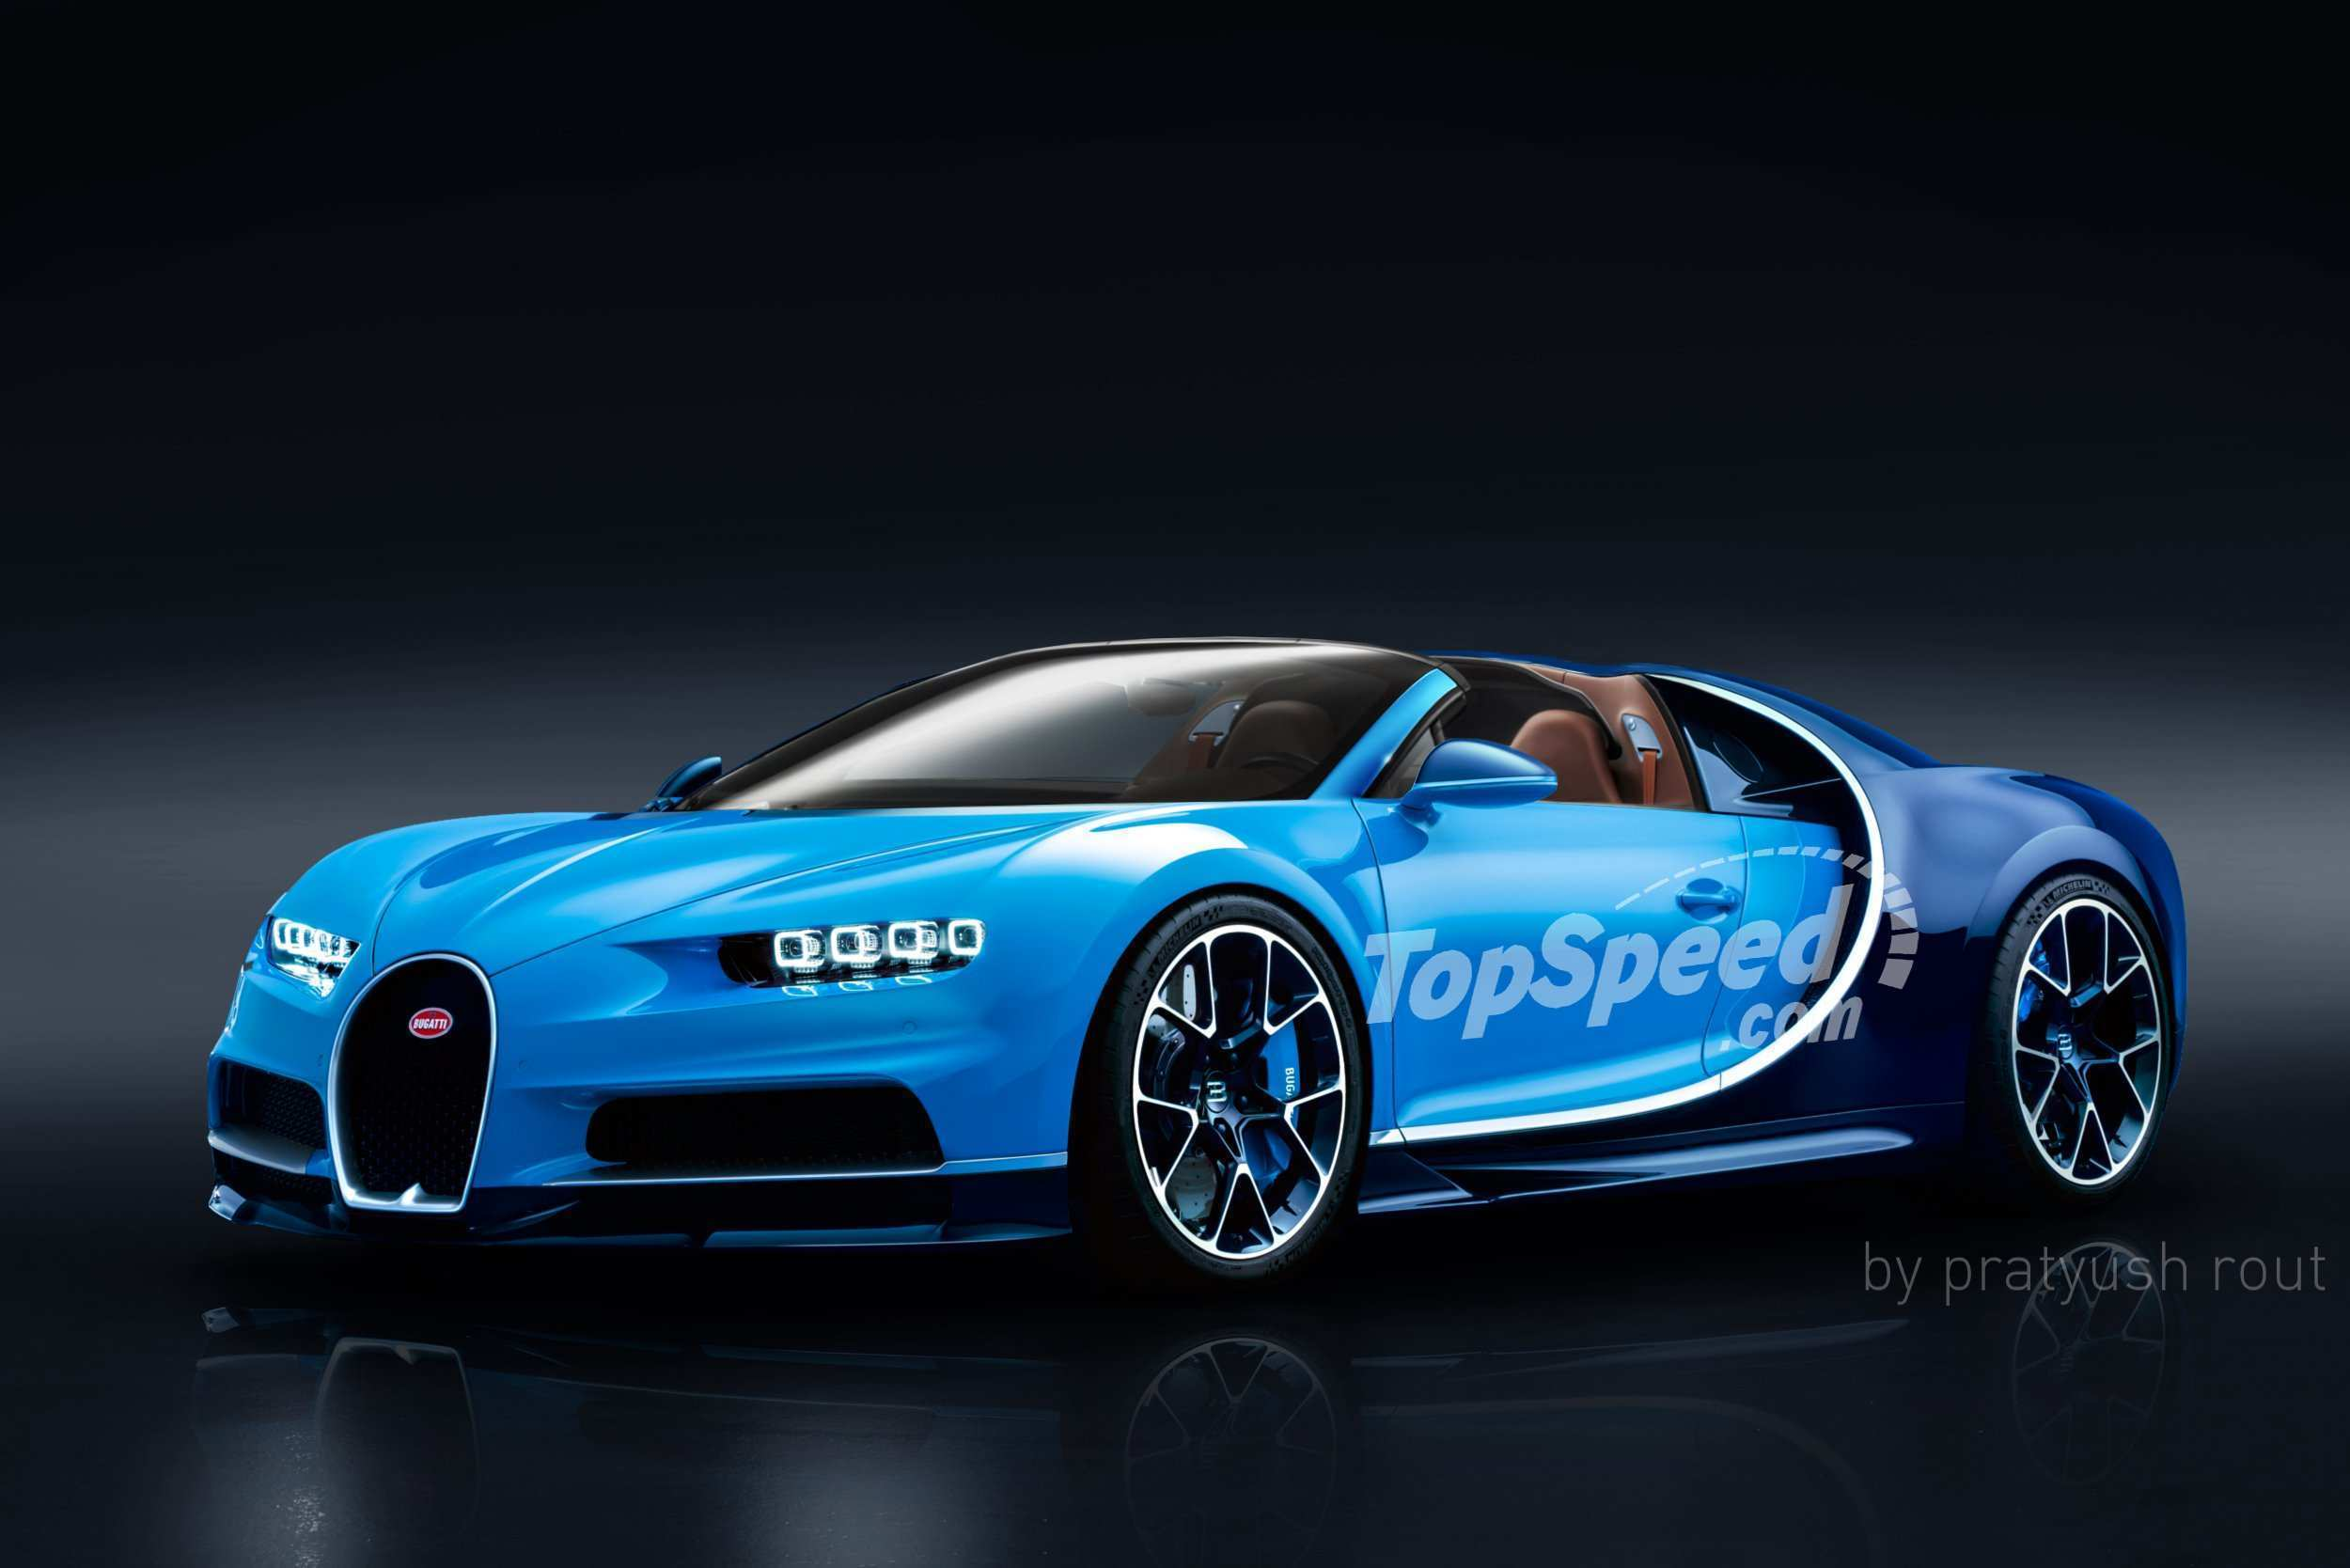 88 New 2020 Bugatti Veyron Specs and Review for 2020 Bugatti Veyron